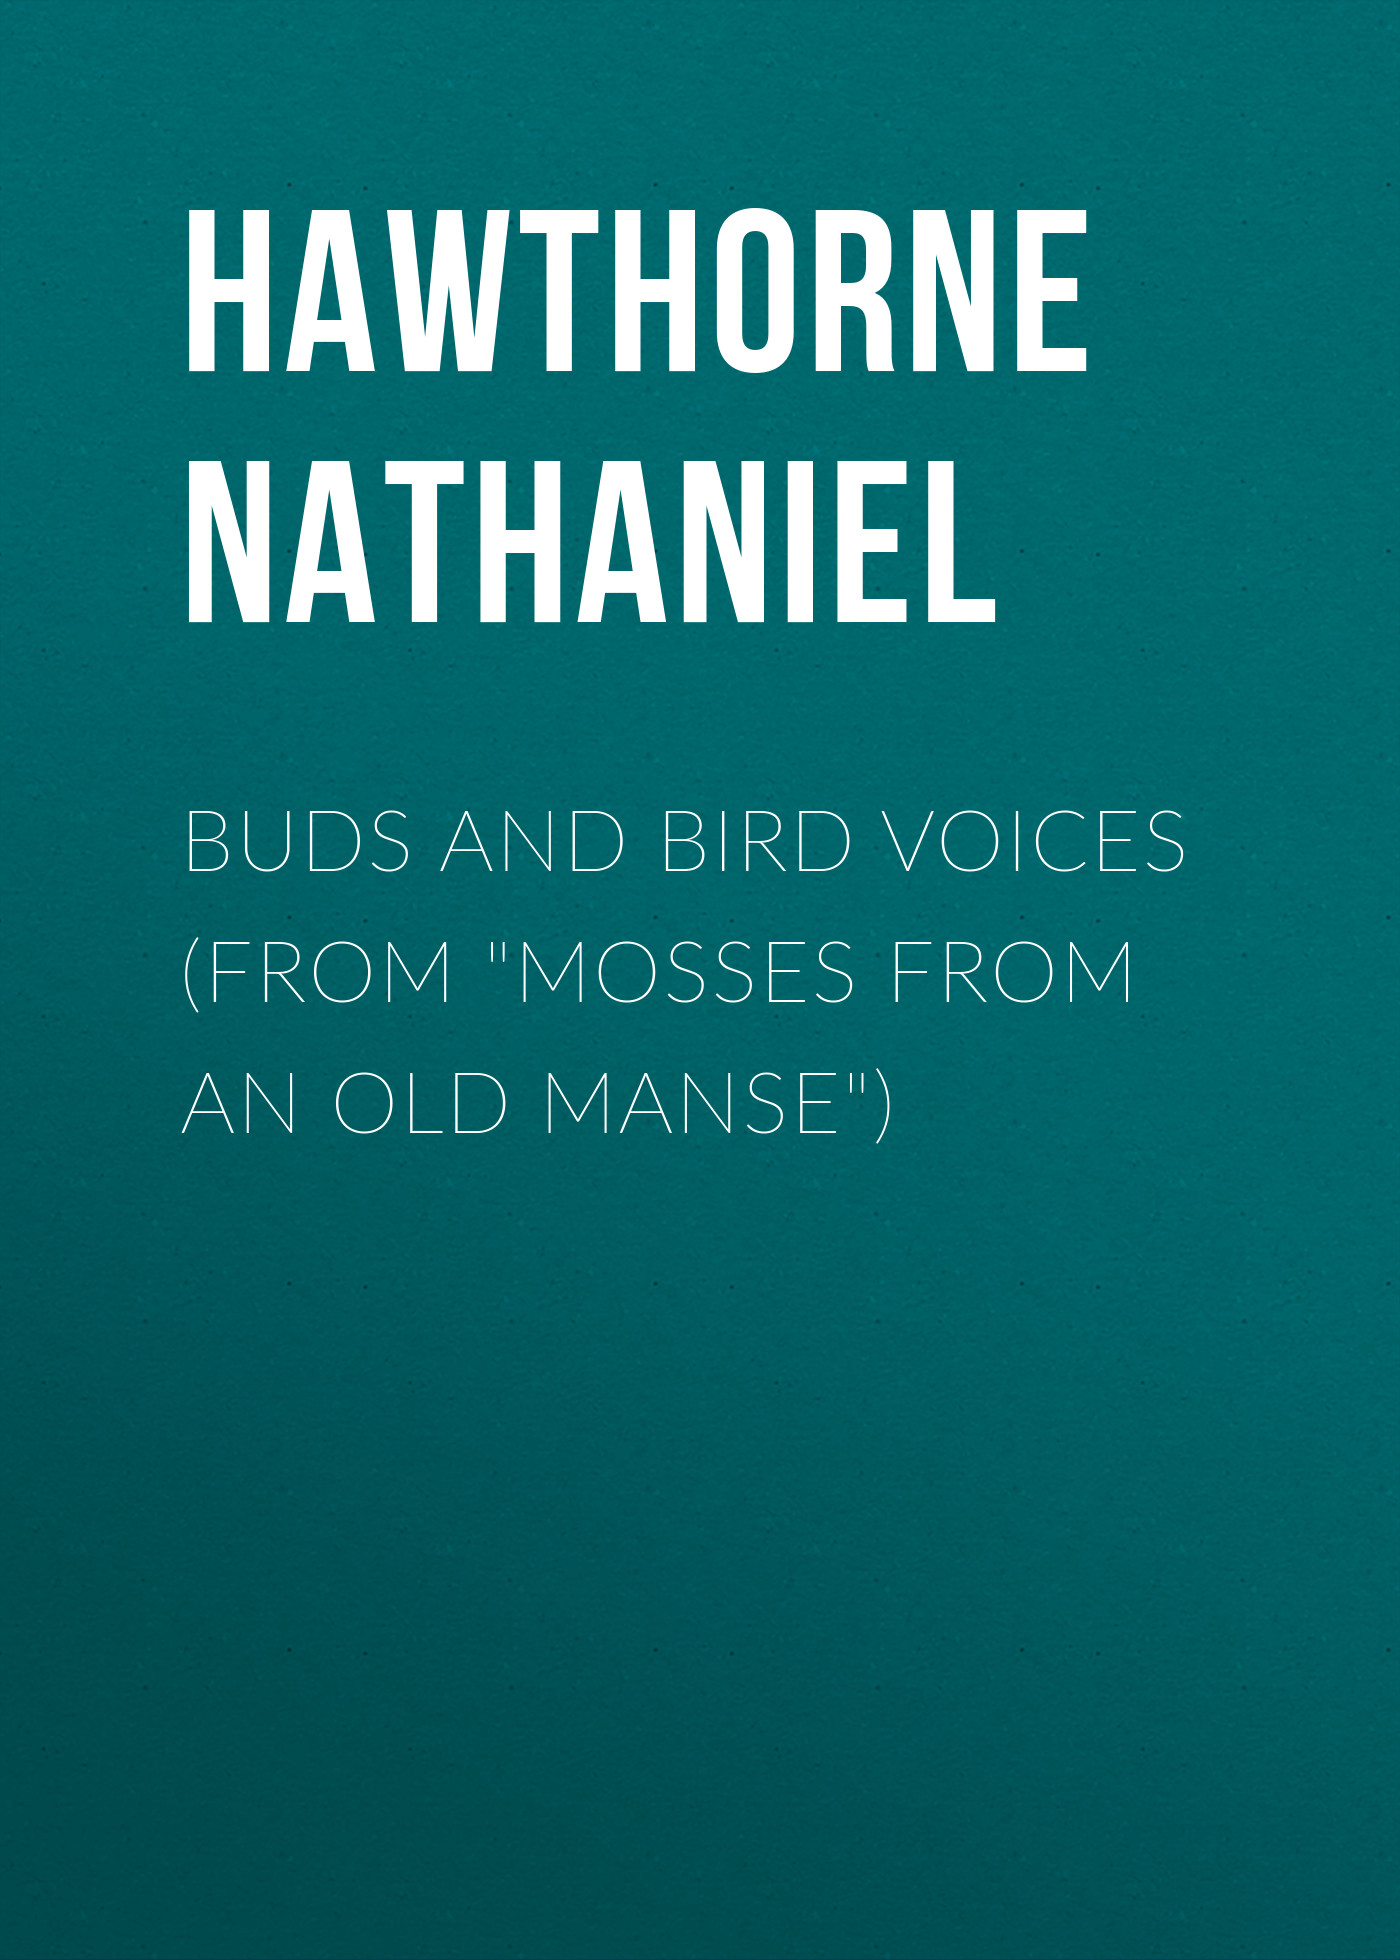 Hawthorne Nathaniel Buds and Bird Voices (From Mosses from an Old Manse) hawthorne n mosses from an old manse the blithedale romance